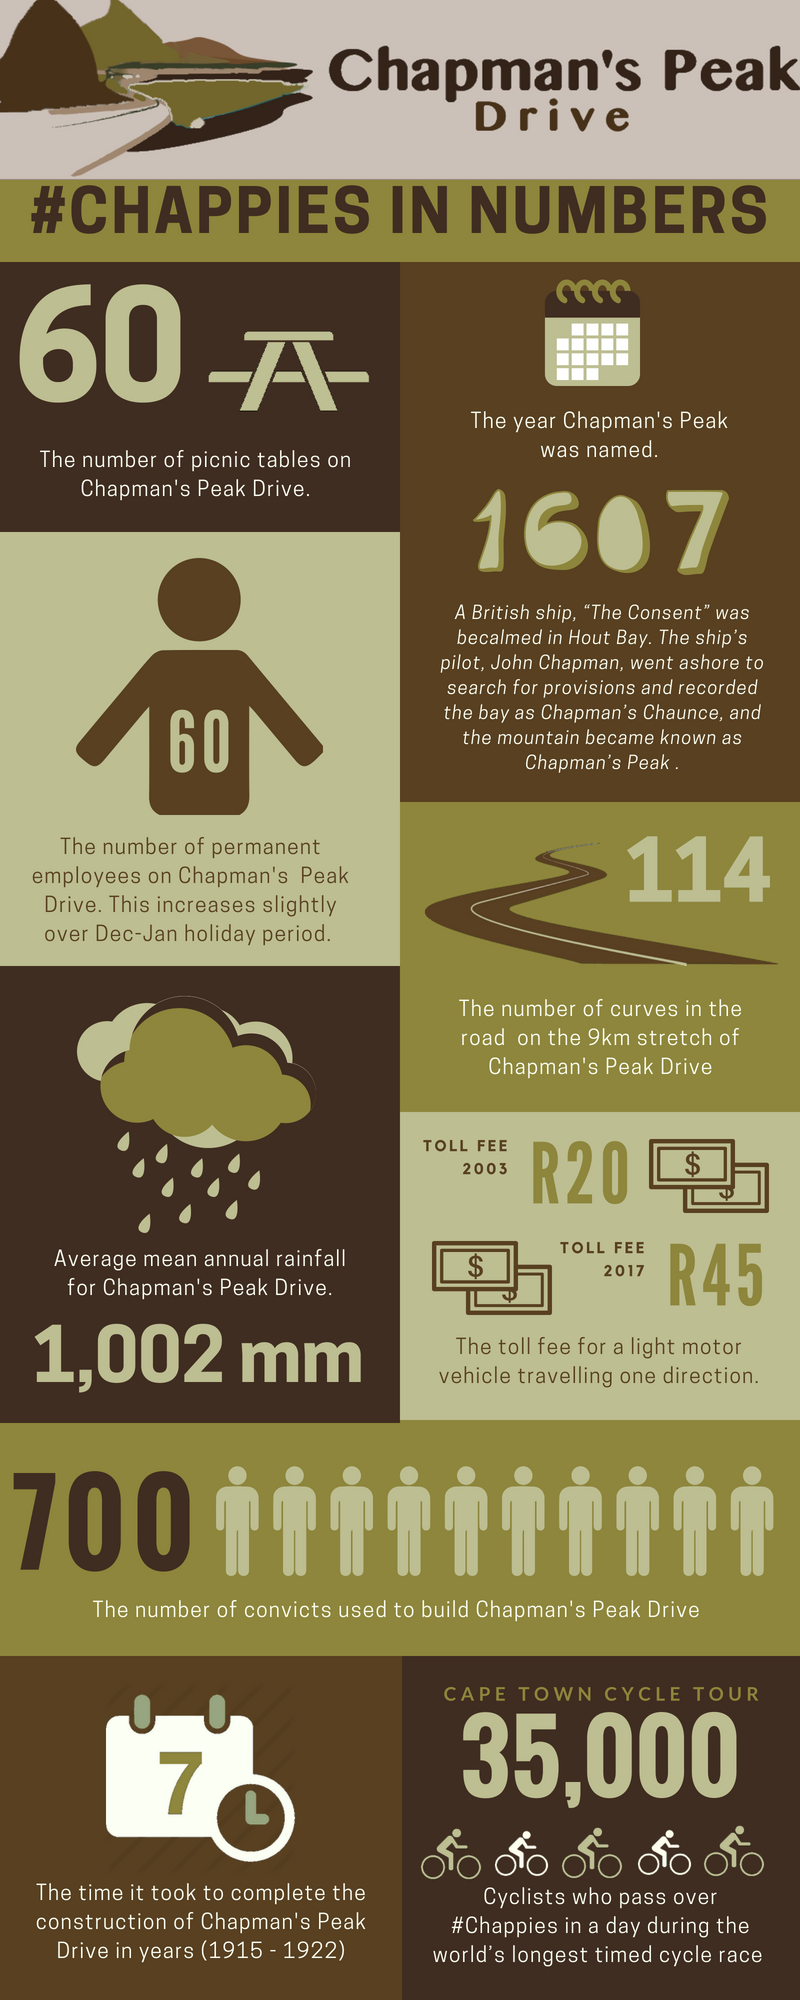 Chappies in numbers 1